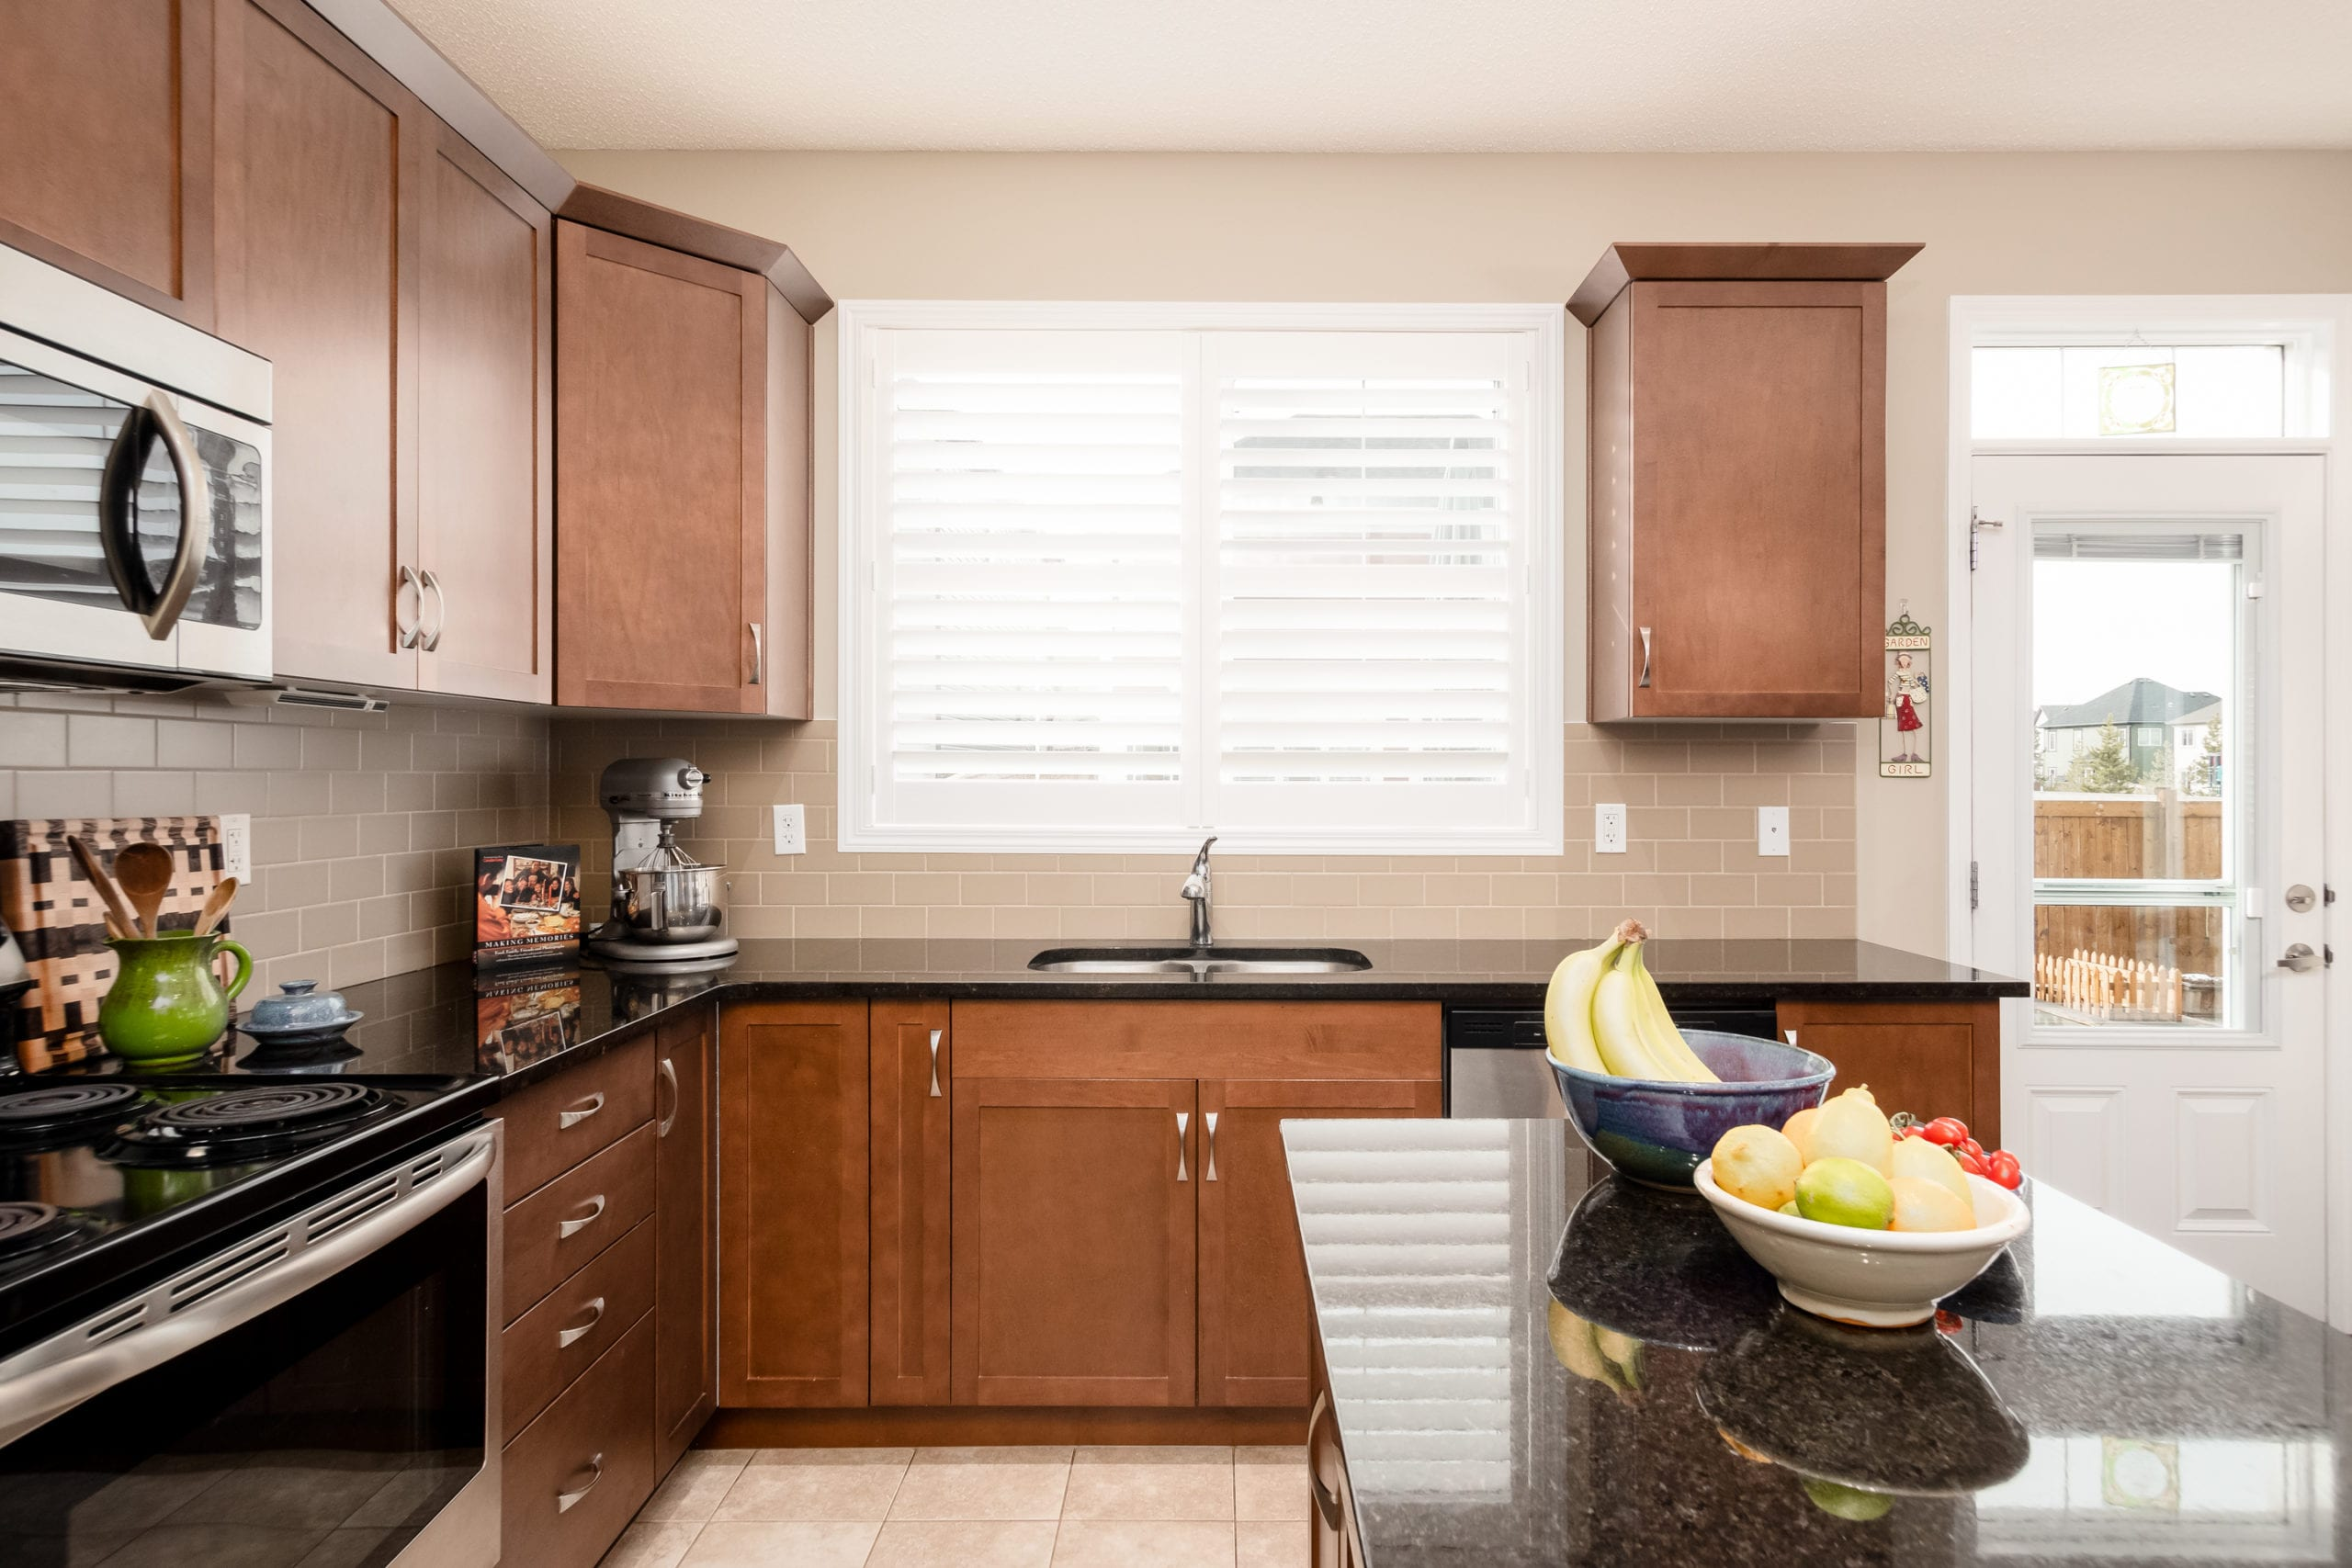 Hello Gorgeous - 503 Windbrook Heights SW Airdrie - Tara Molina Real Estate (13 of 58)